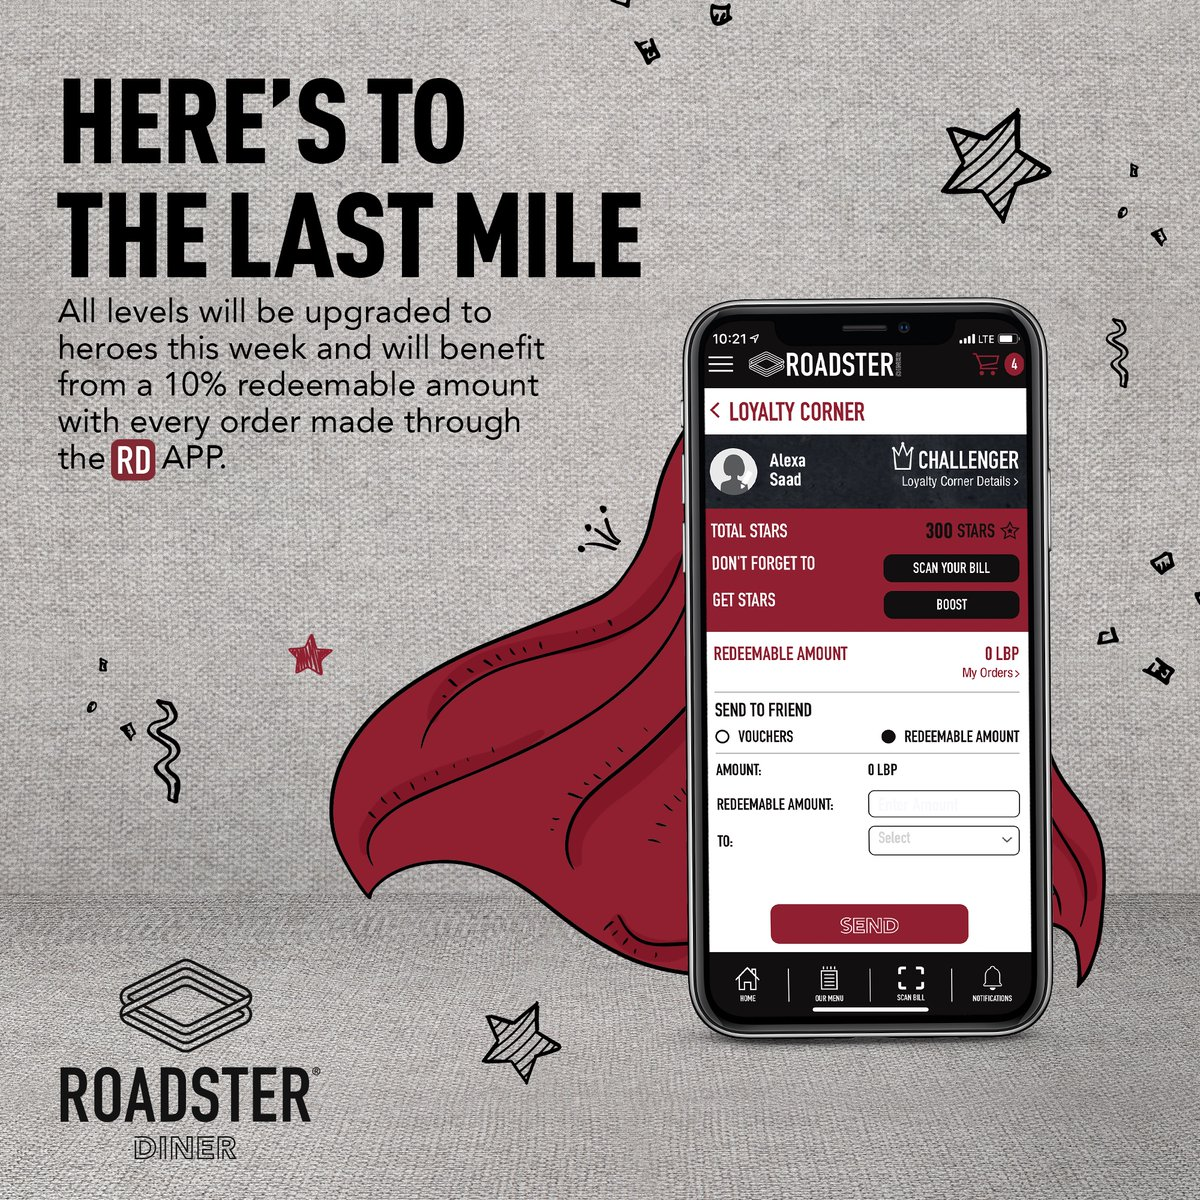 Here's to the last mile, stay home, stay safe...And enjoy 𝗛𝗲𝗿𝗼 𝘀𝘁𝗮𝘁𝘂𝘀 on our app, we're almost there 🤩! Order from the RD APP and get 10% redeemable amount with every order excluding the RD Favorites combo meals. #RDAPP #StaySafe https://t.co/20VofnnsMM